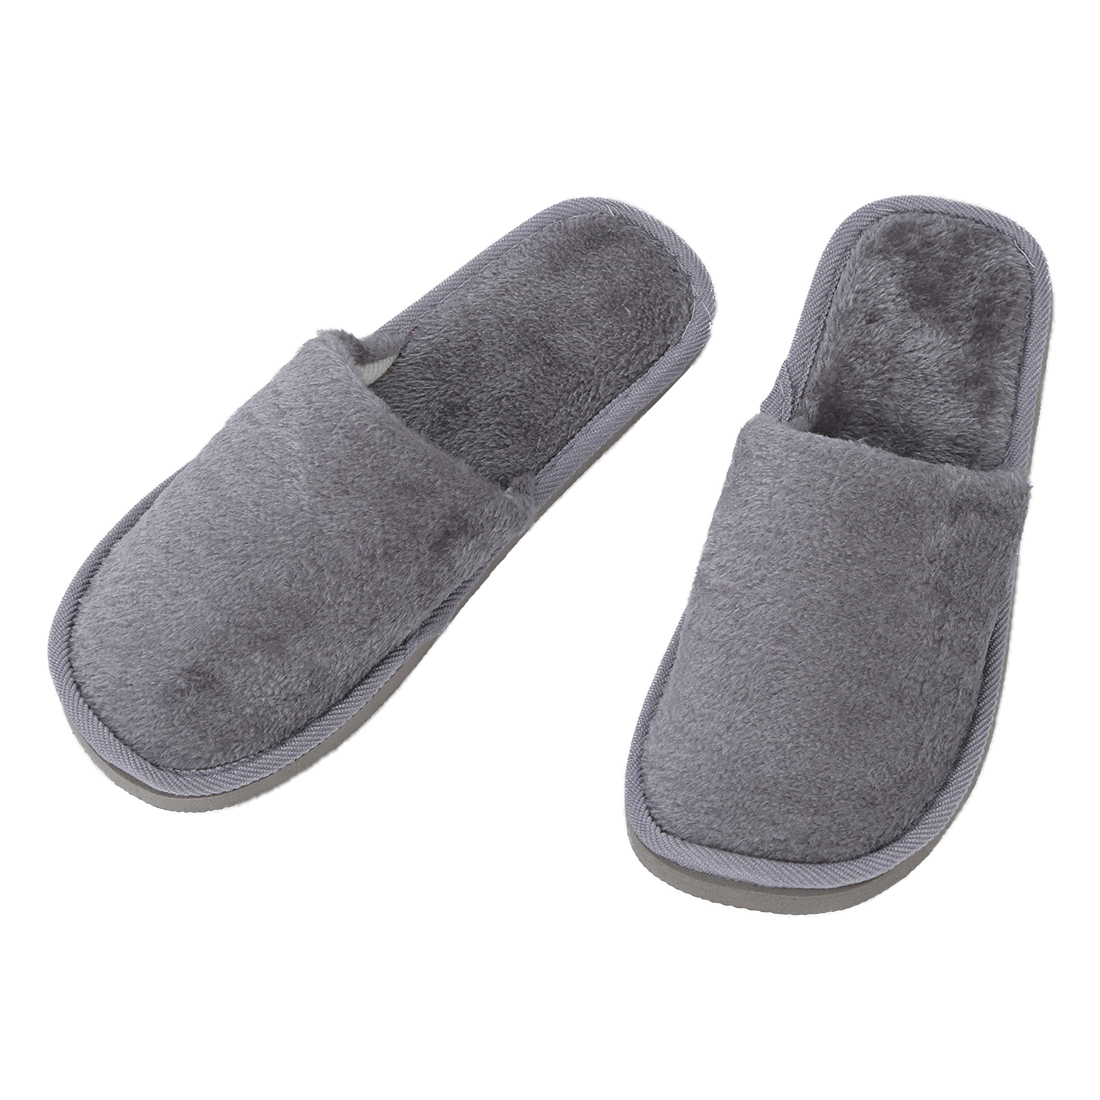 DCOS Men Gray Fleeces House Soft Winter Warm Slippers UK 8.5 for Feet Length 27 cm new arrival background fundo house door with flowers 7 feet length with 5 feet width backgrounds lk 2684